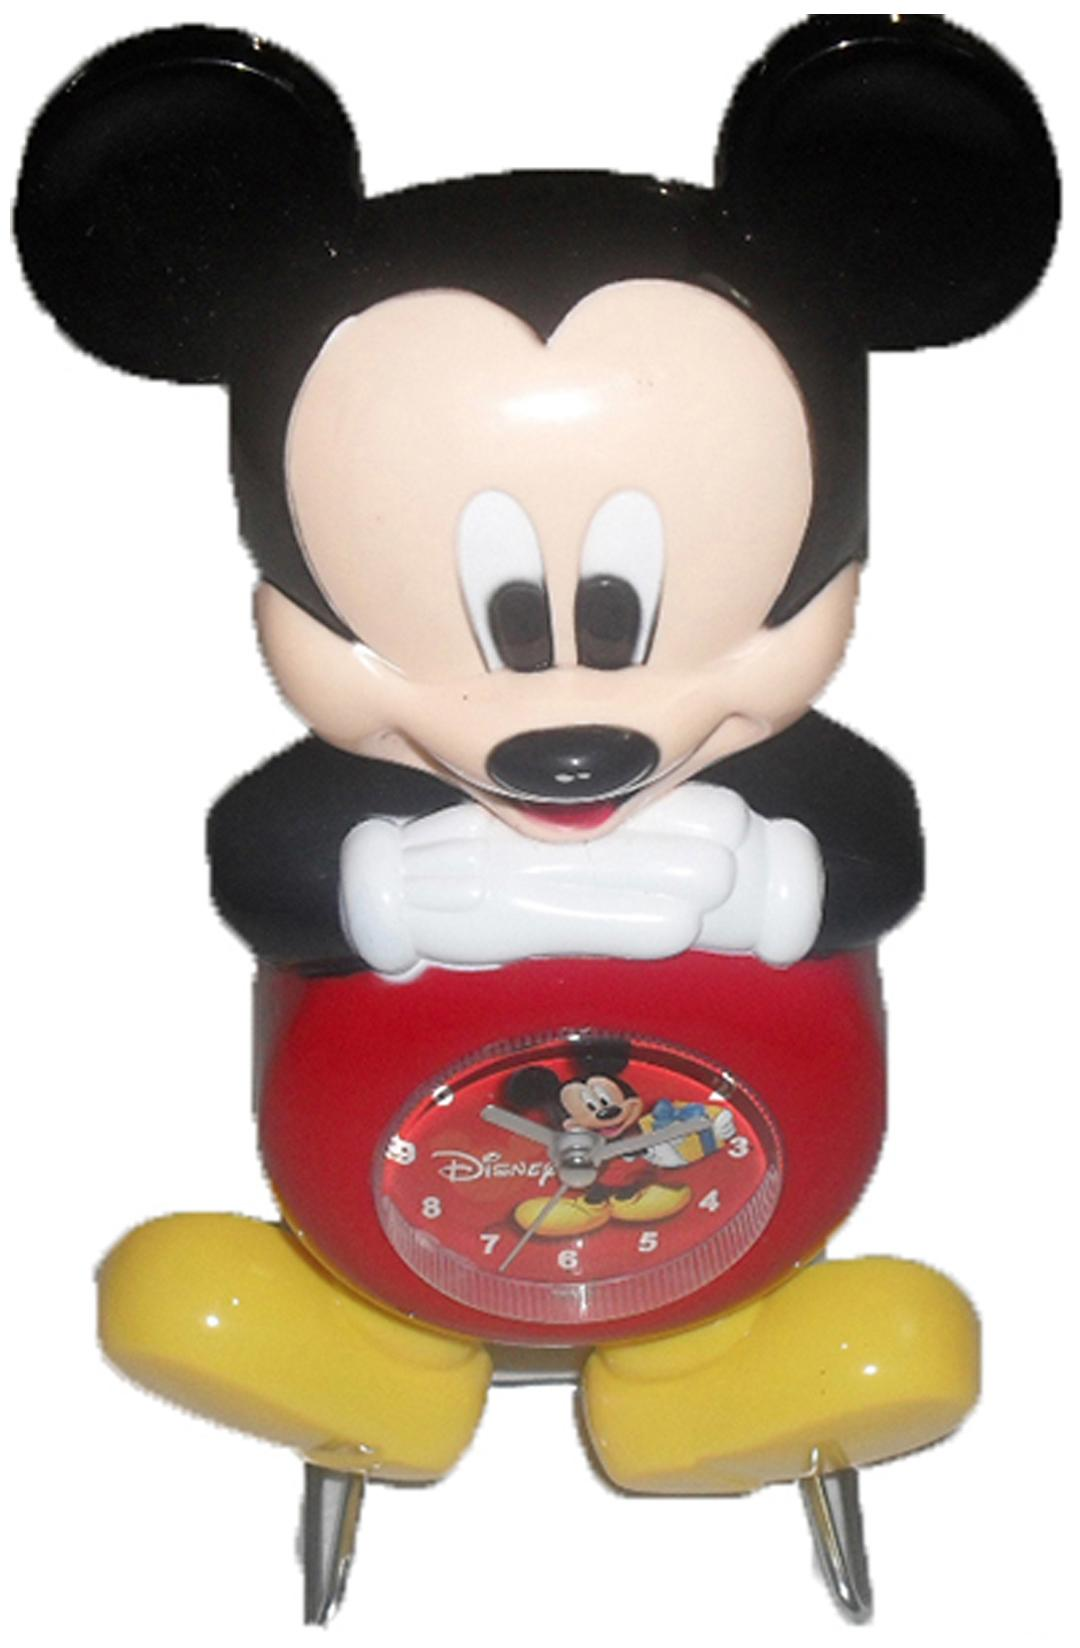 https://assetscdn1.paytm.com/images/catalog/product/K/KI/KIDMICKEY-MOUSERESH2607192D529C1/a_0.jpg